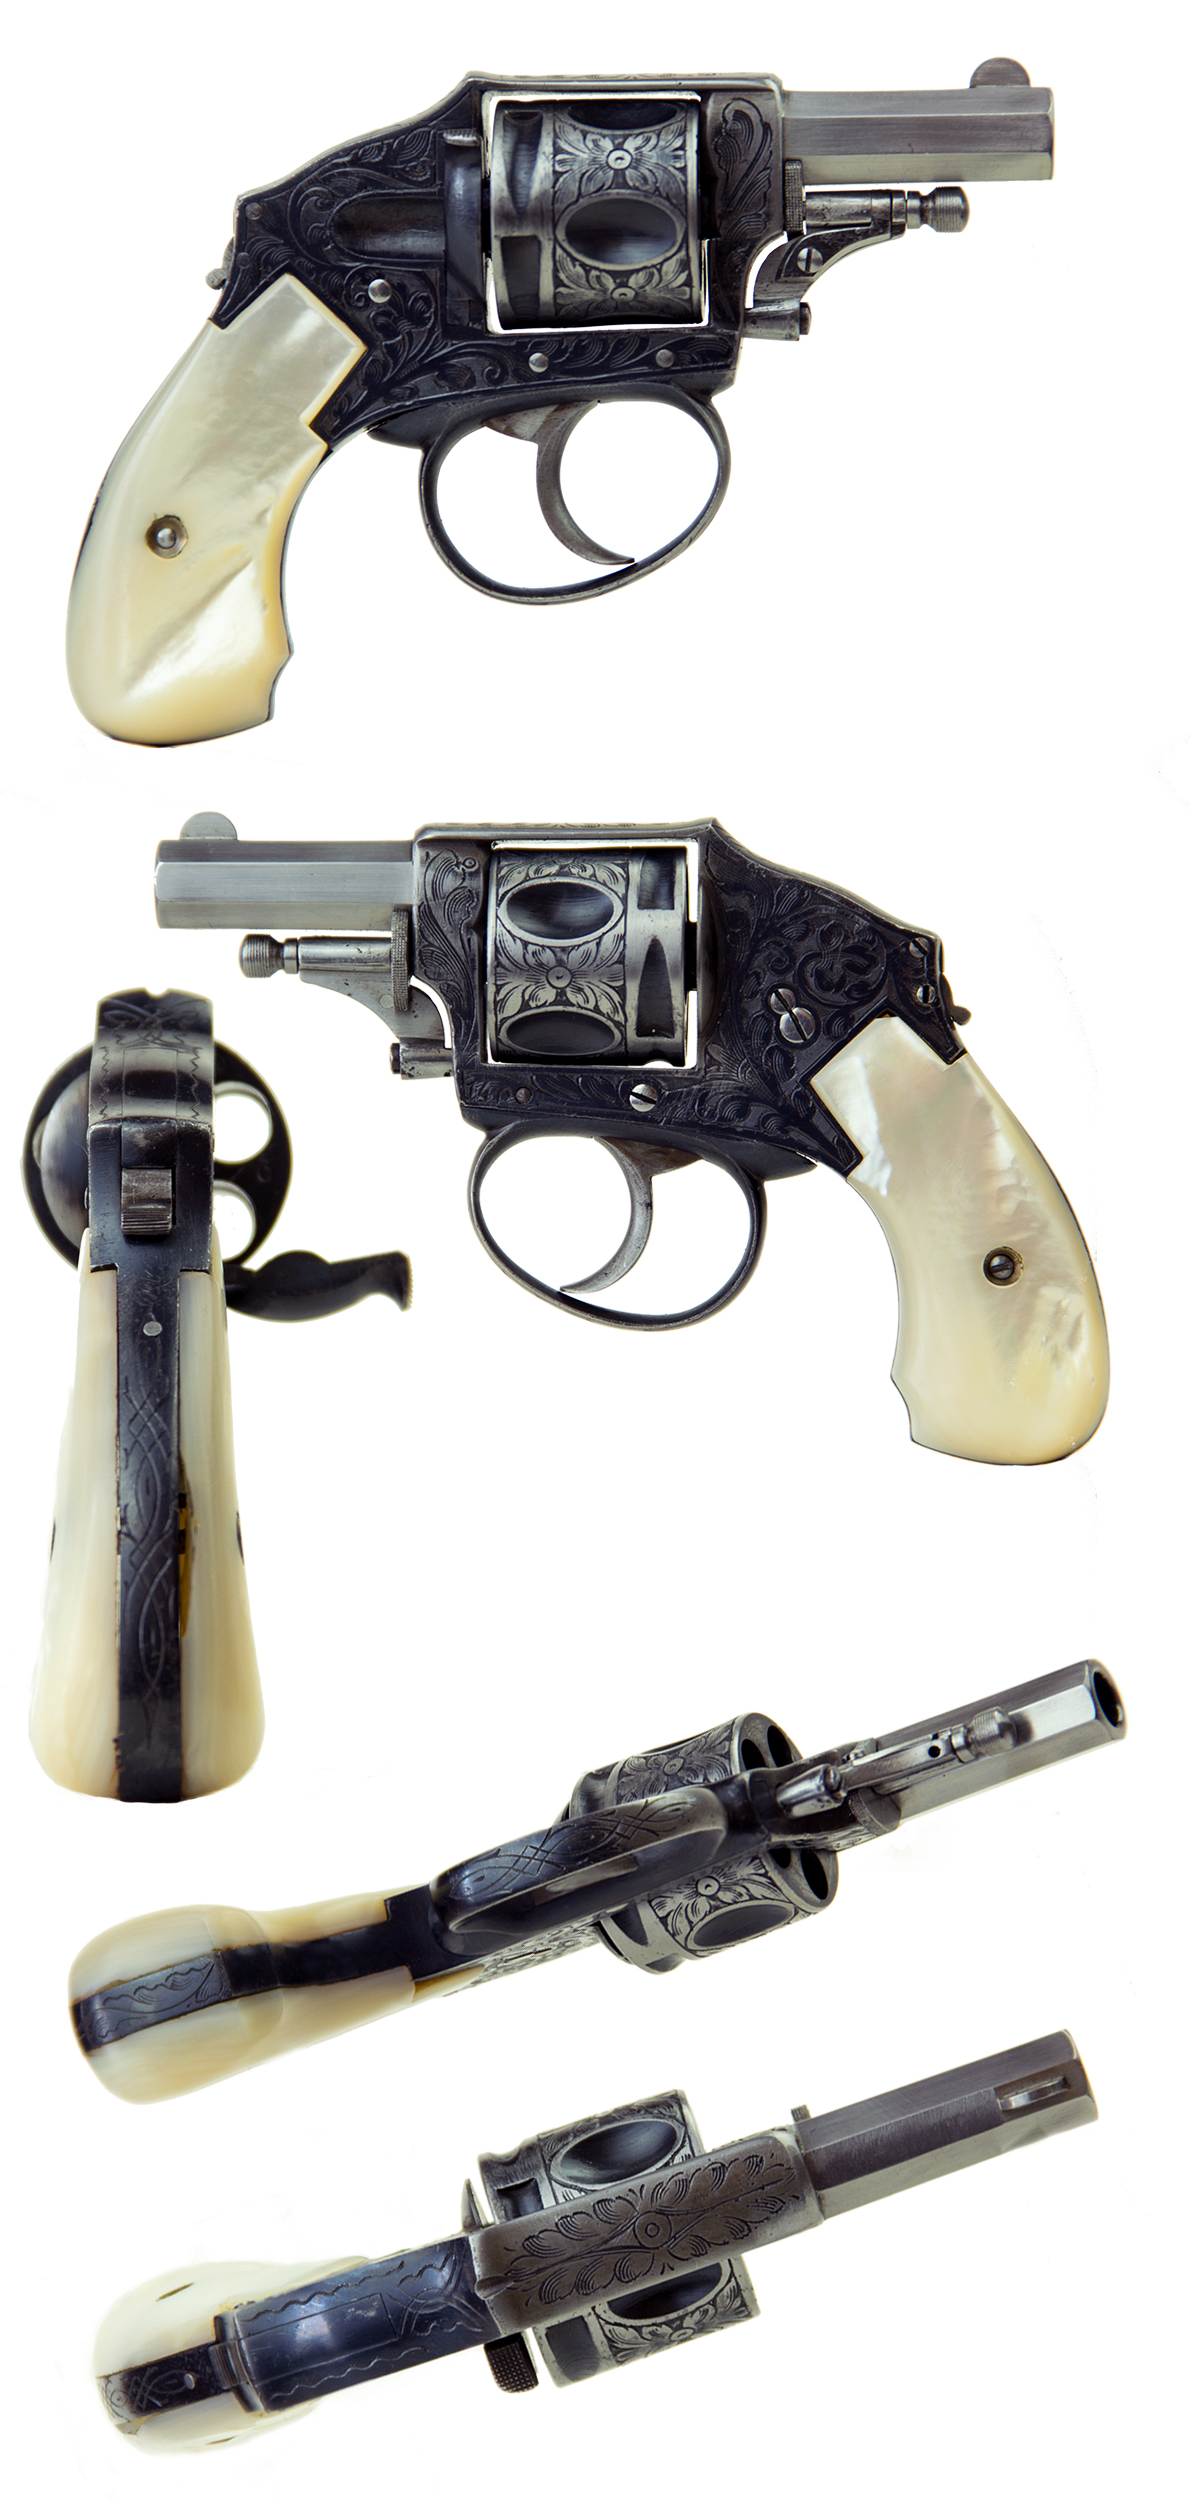 Pin On Guns Revolvers Pistols And Other Handguns